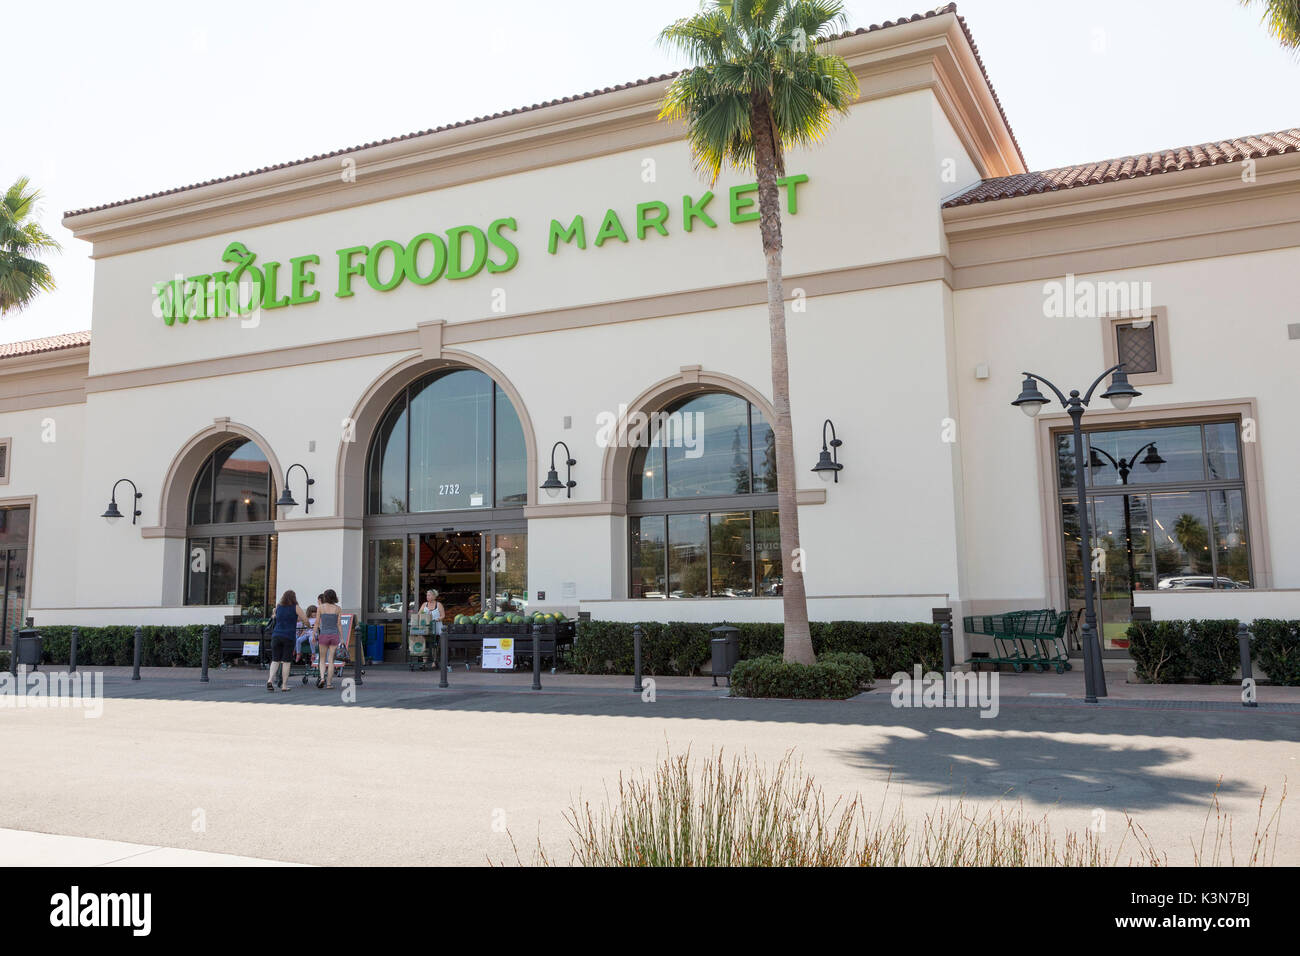 Whole Foods Grocery store in Sunnyvale, Calif. - Stock Image